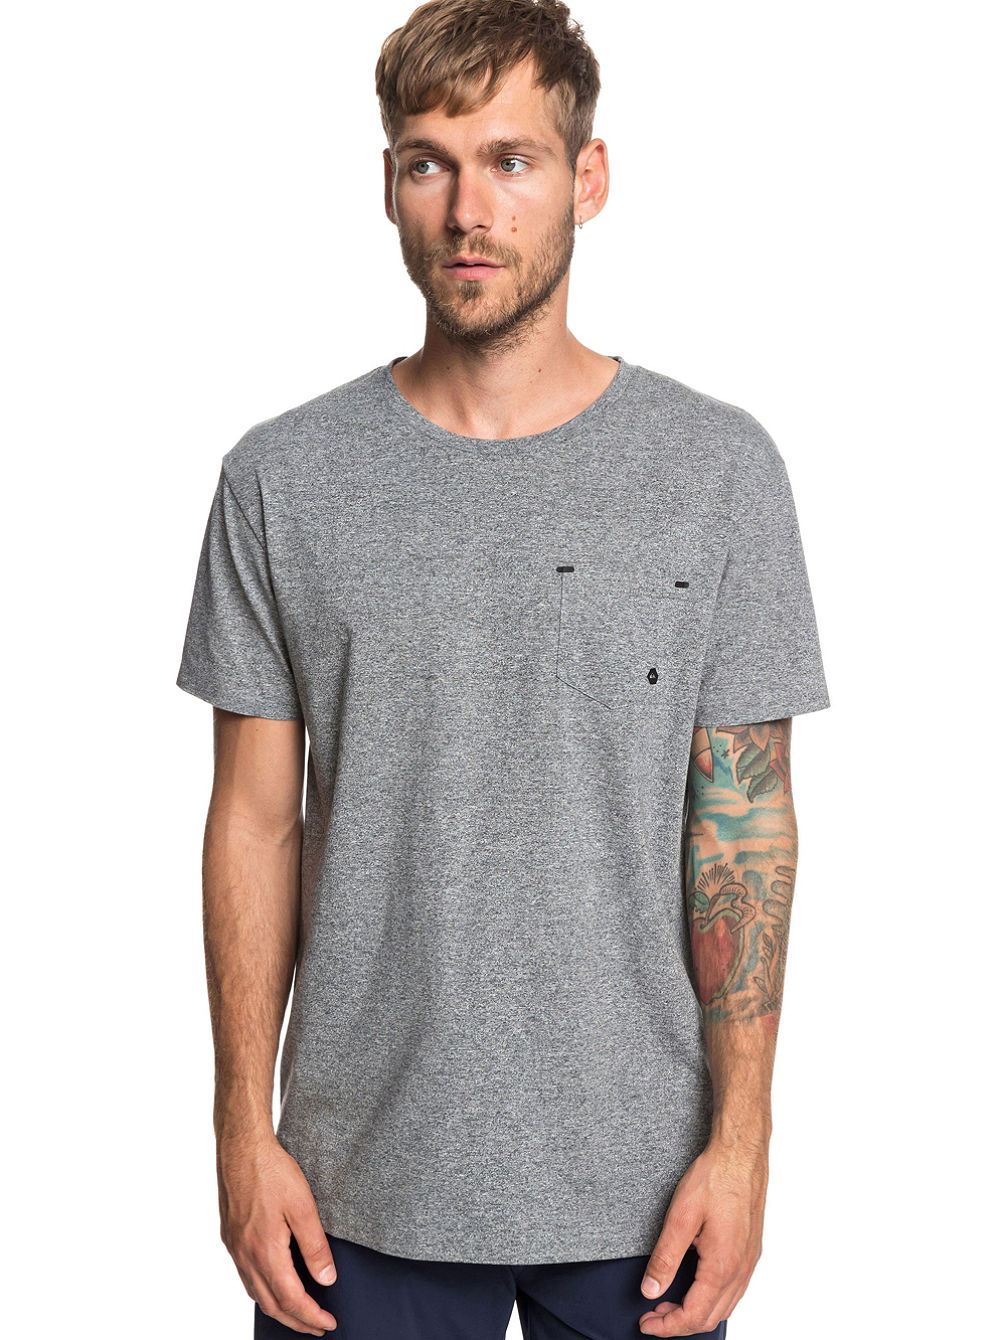 8b6fcbfd1a7f80 Buy Quiksilver Adapt T-Shirt online at Blue Tomato